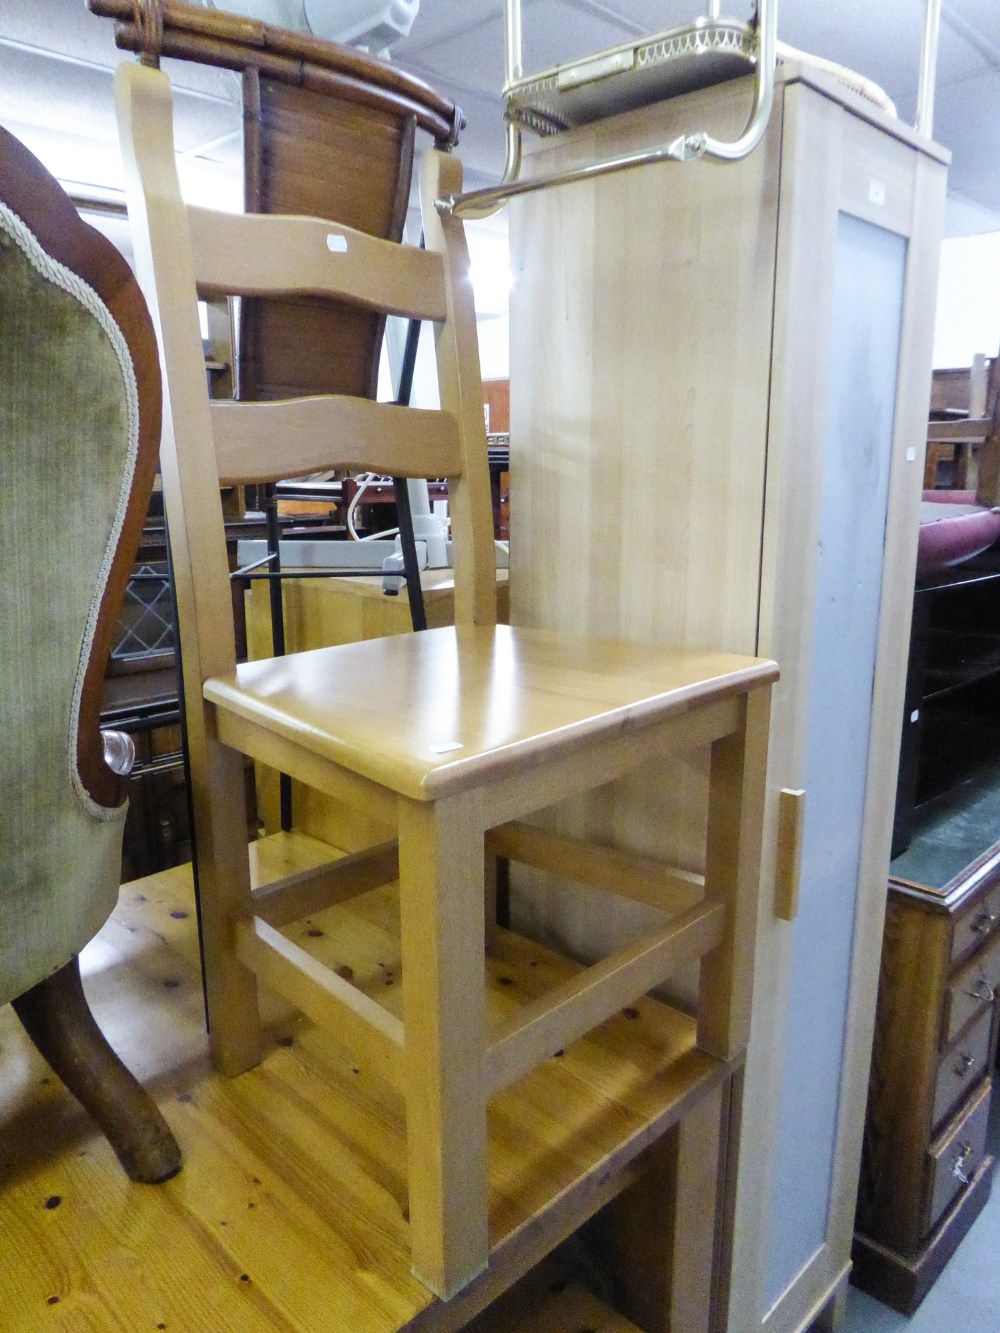 Lot 85 - A LARGE PINE EXTENDING DINING TABLE, WITH TWO BENCH SEATS AND A SIMILAR DINING CHAIR (4)